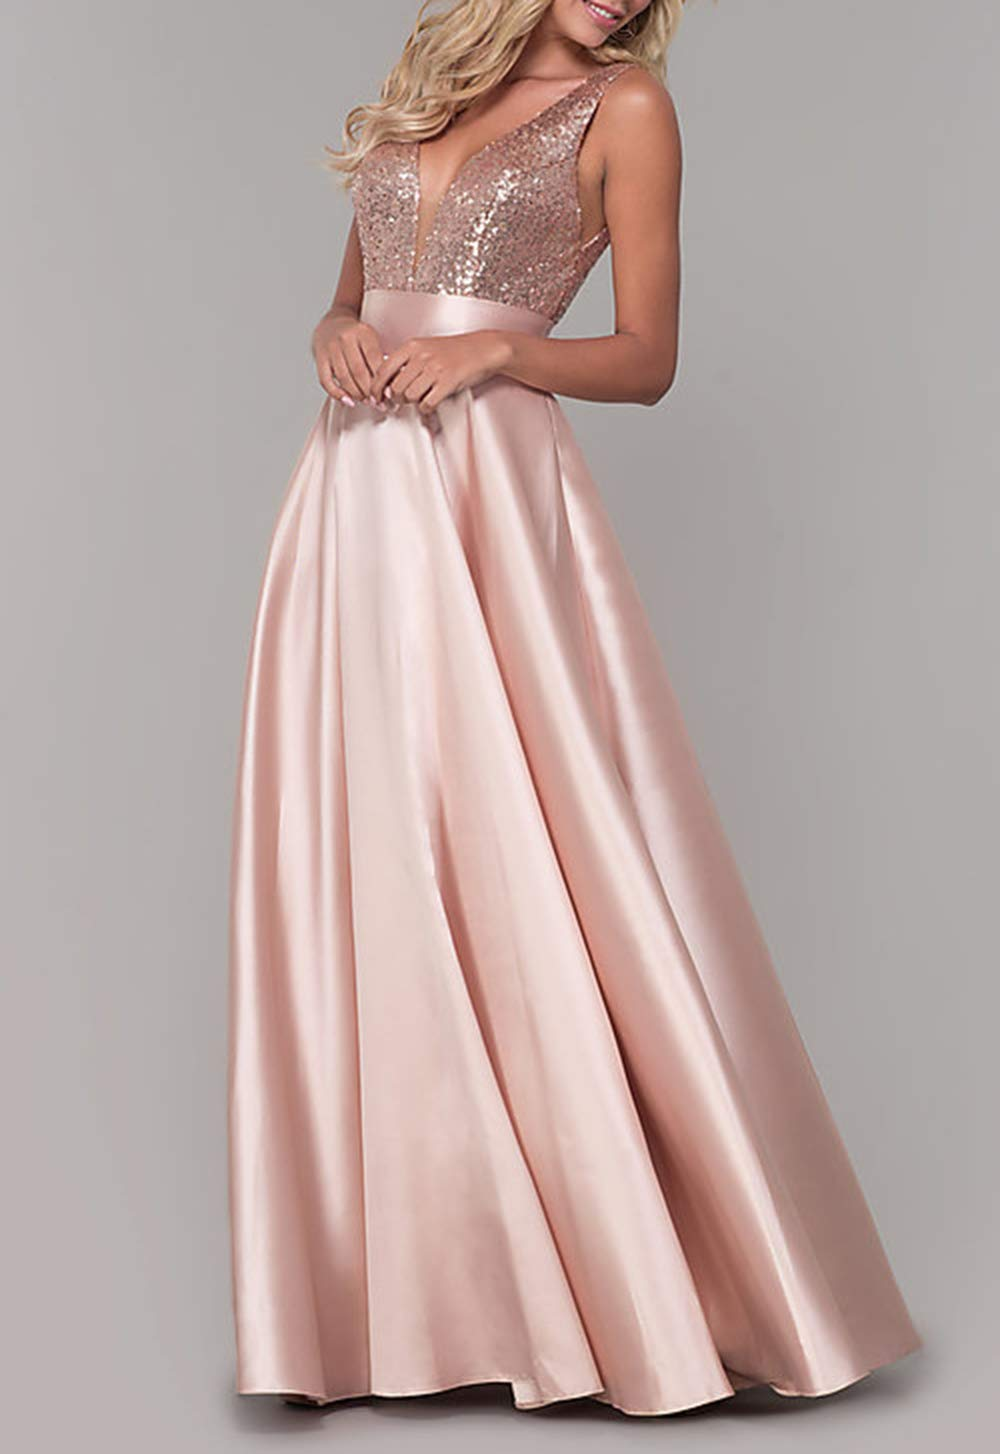 Women Halter Bridesmaid Dresses Long Formal Evening Ball Gown Prom Party Dress